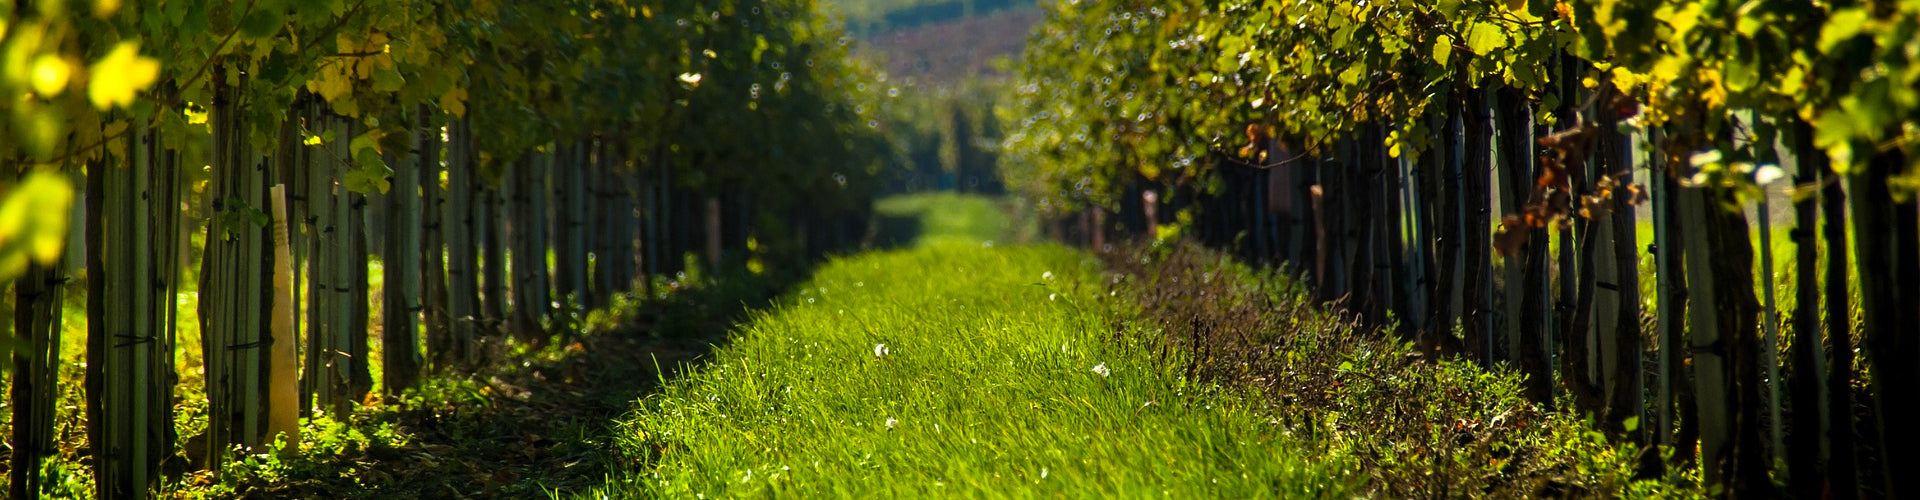 Organic Vines in Vineyard with grass crop cover